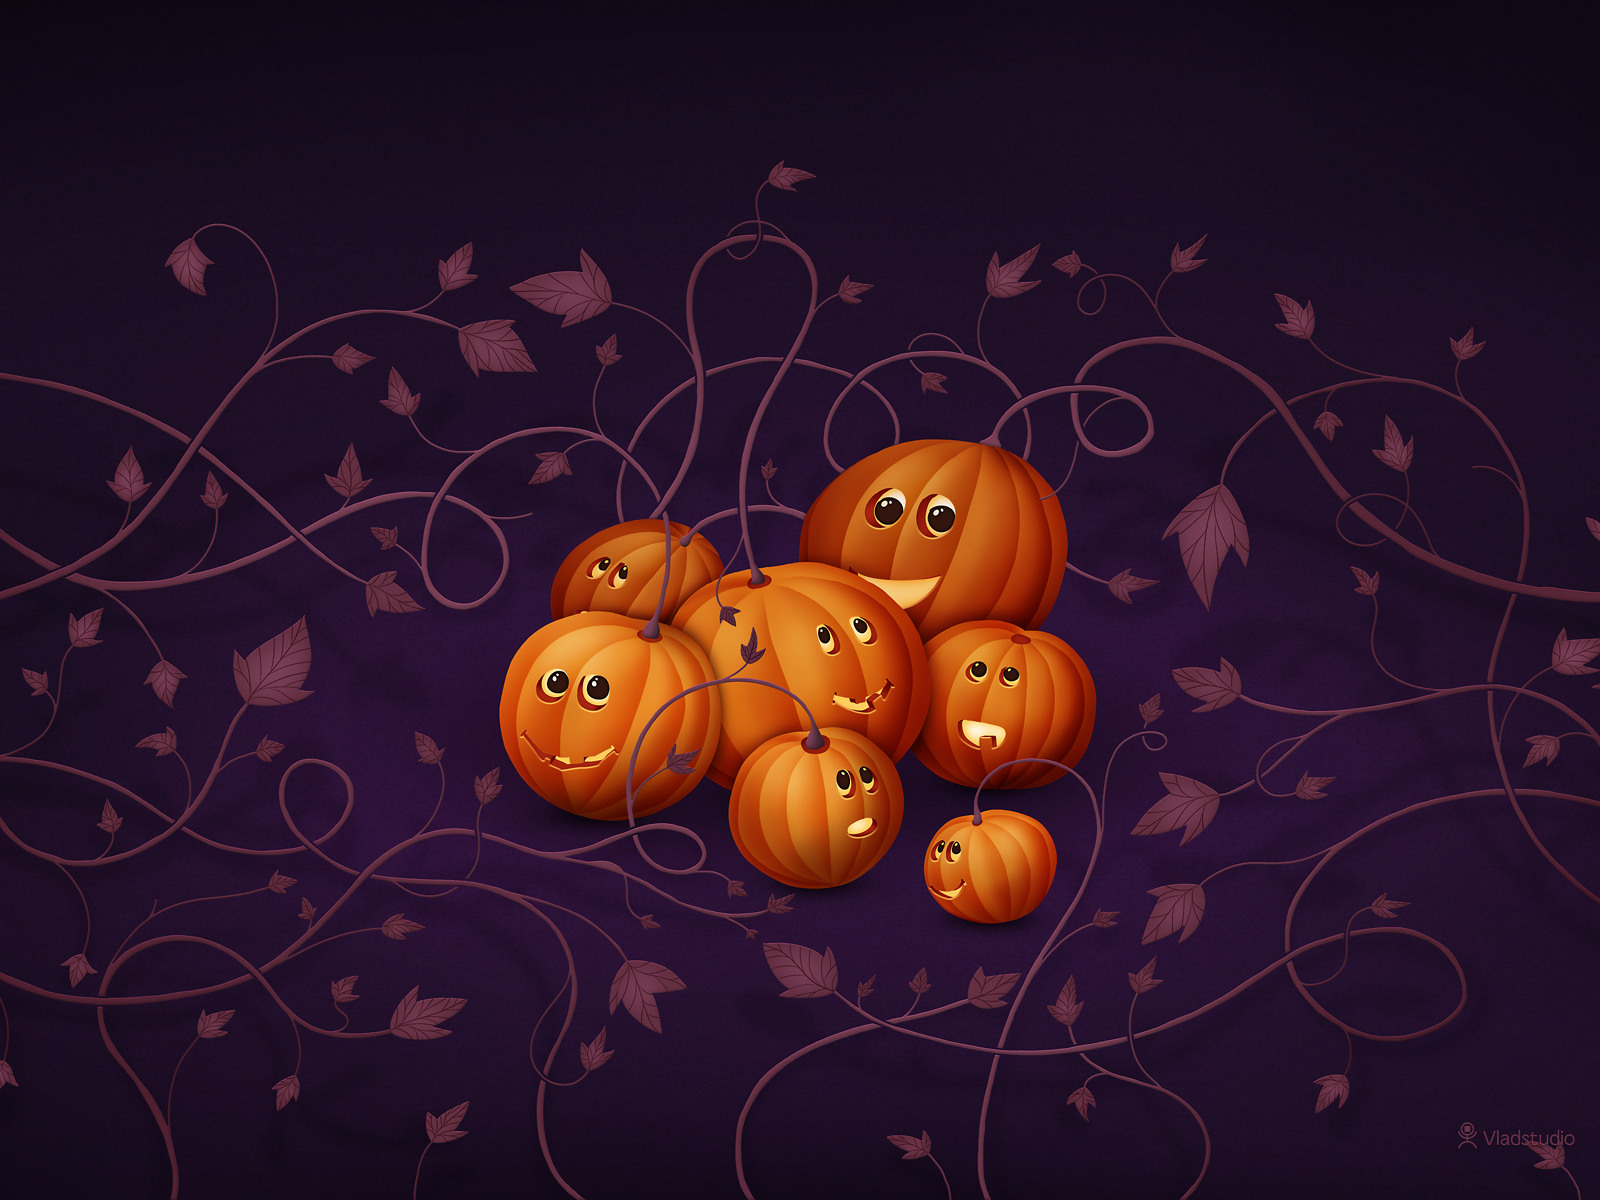 Happy Halloween Happy Pumpkins 2012 Desktop Background. Image Credit:  Vladstudio · Happy_Halloween_Happy Pumkins 2012 HD Wallpaper